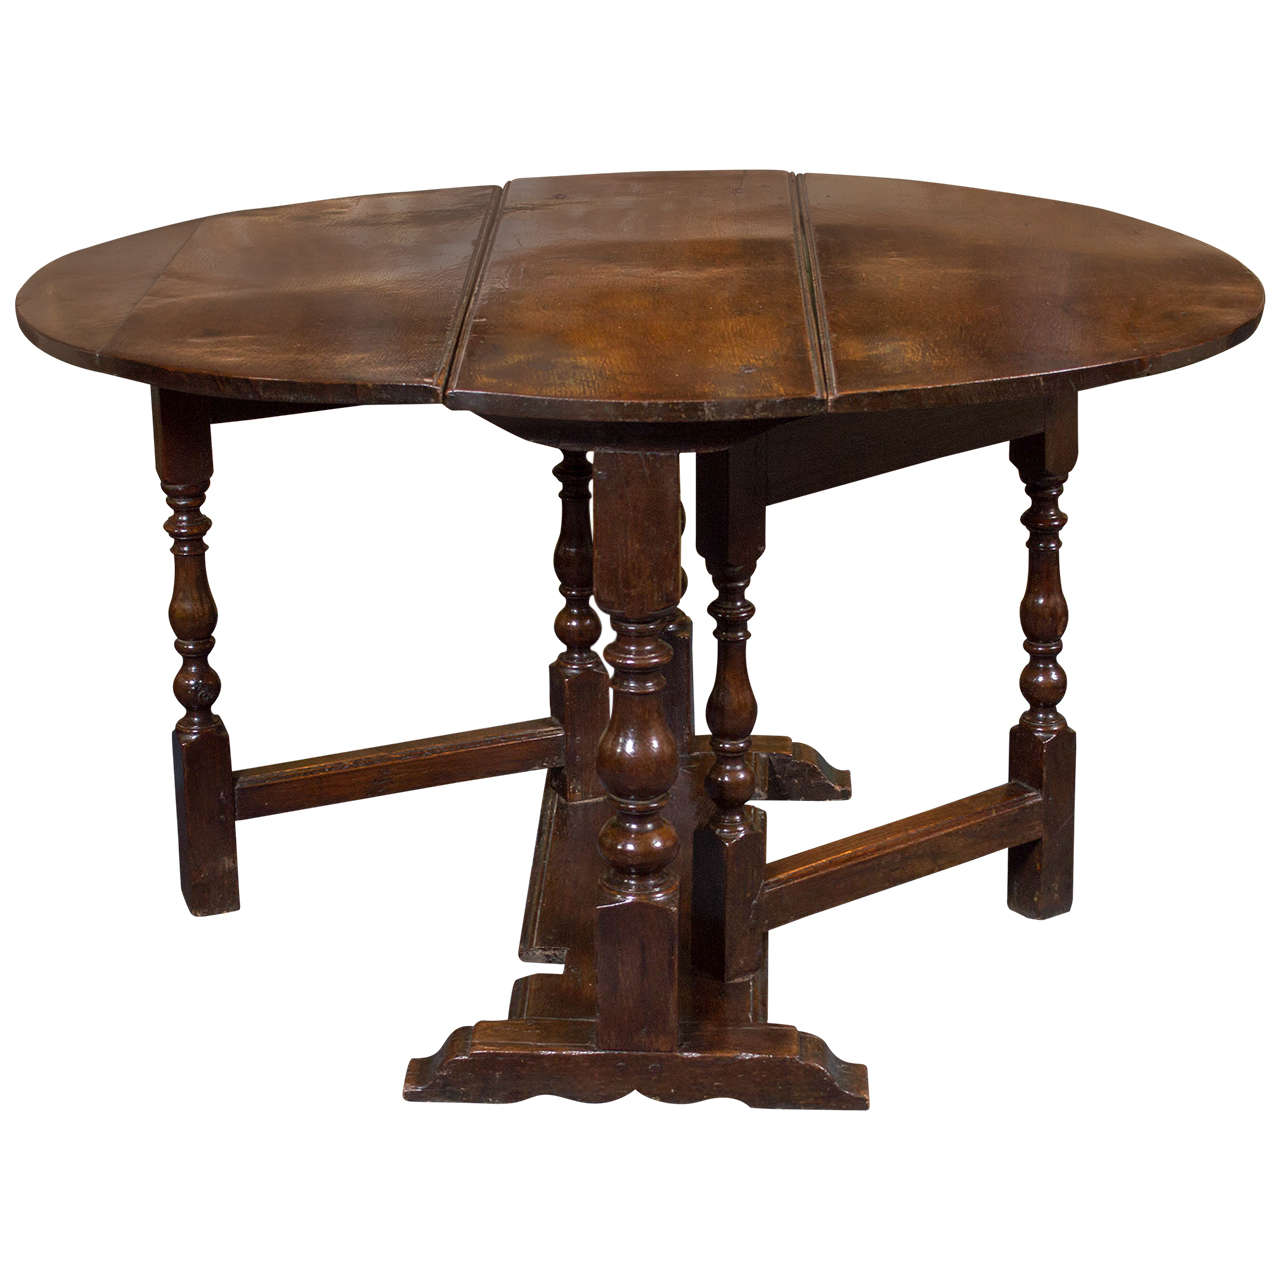 Diminutive english oak gateleg table circa 1750 garden for To the table